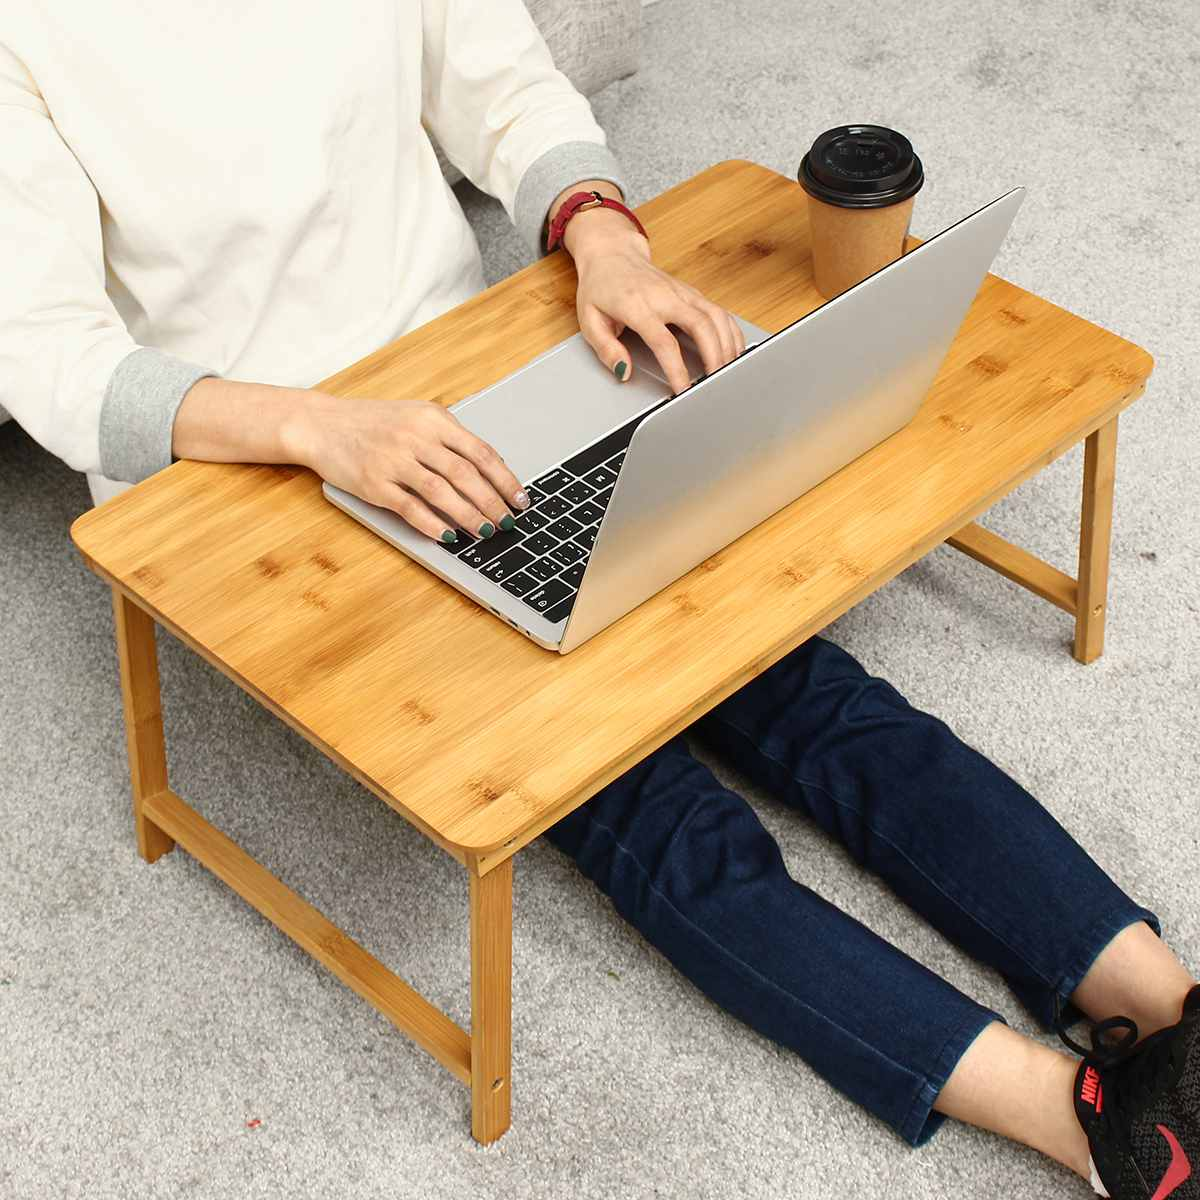 60*39*27cm Folding Laptop Table For Bed Bamboo Laptop Desk Computer Book Stand on Sofa Dormitory Travel Camping Picnic Furniture60*39*27cm Folding Laptop Table For Bed Bamboo Laptop Desk Computer Book Stand on Sofa Dormitory Travel Camping Picnic Furniture